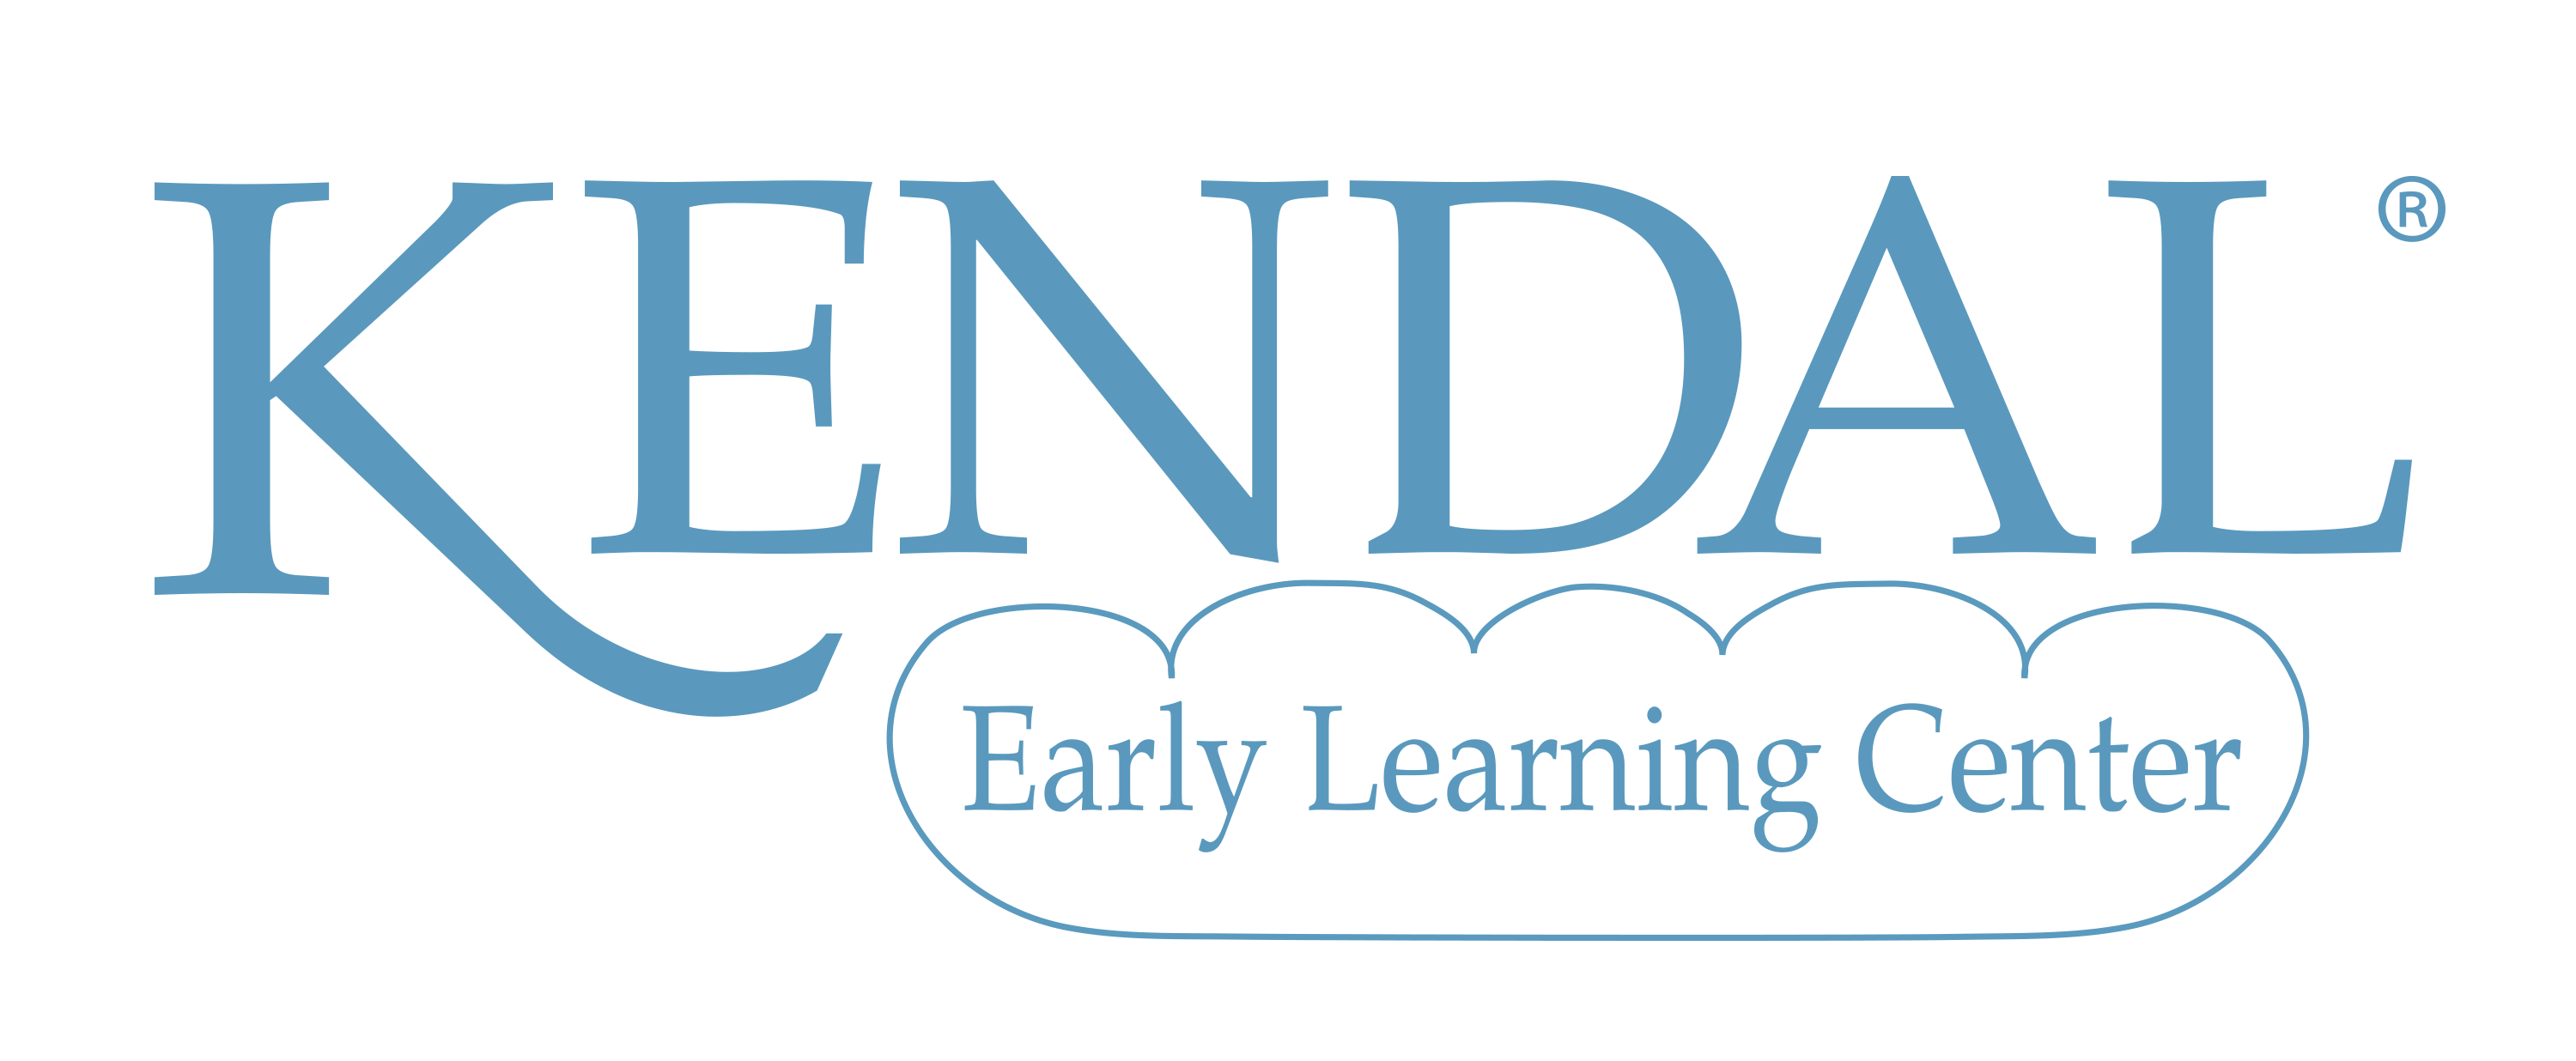 KENDAL EARLY LEARNING CENTER